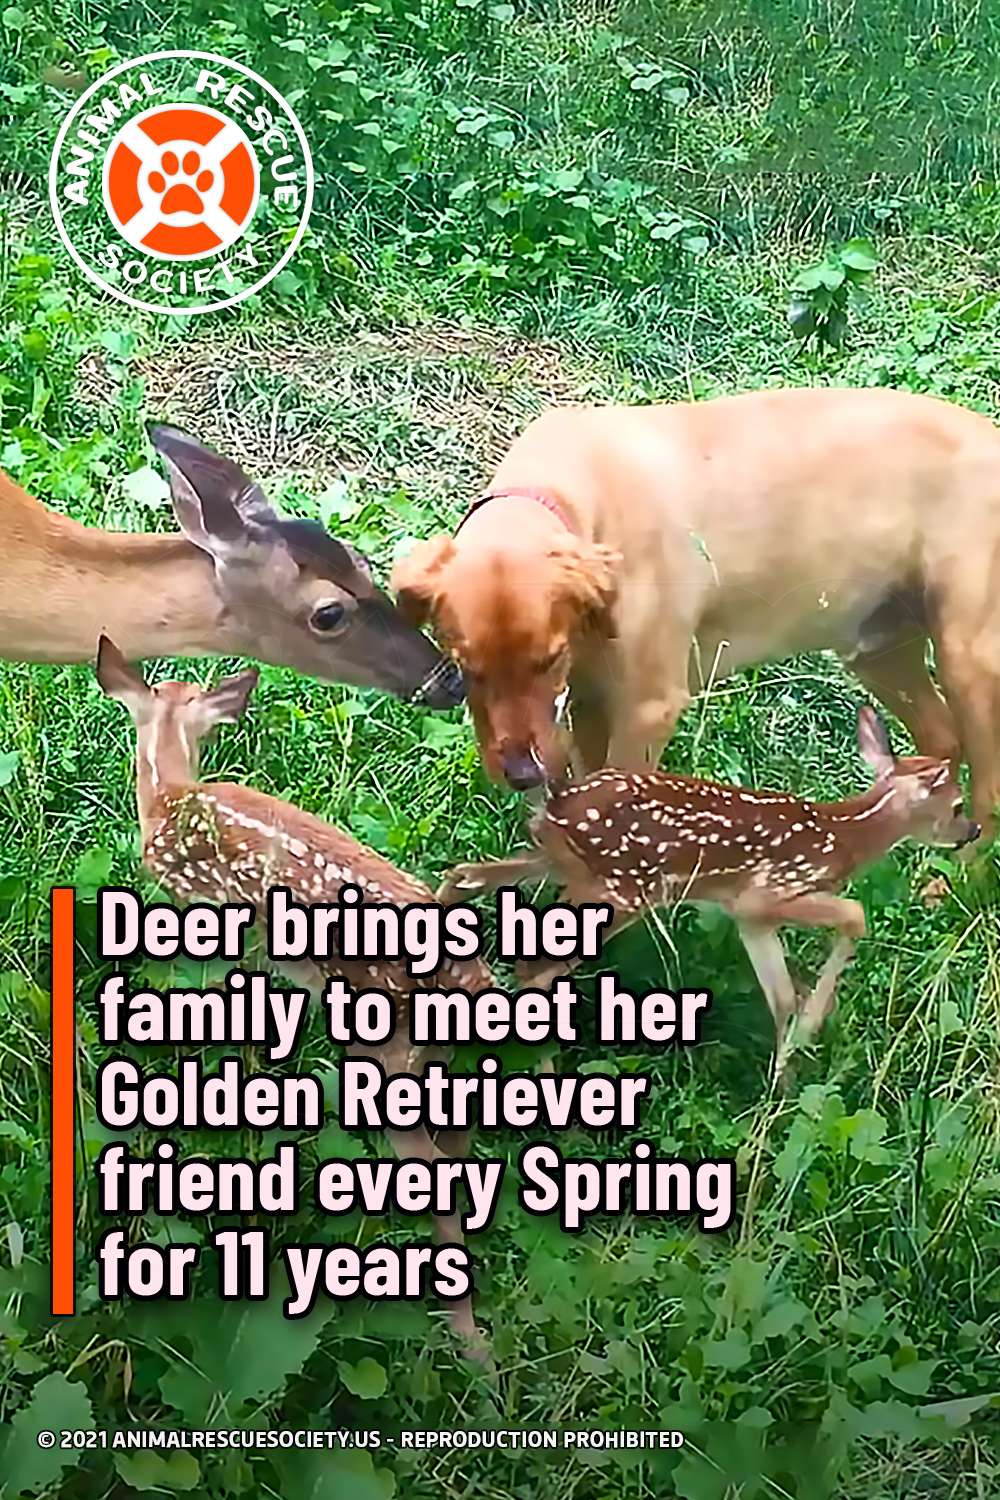 Deer brings her family to meet her Golden Retriever friend every Spring for 11 years